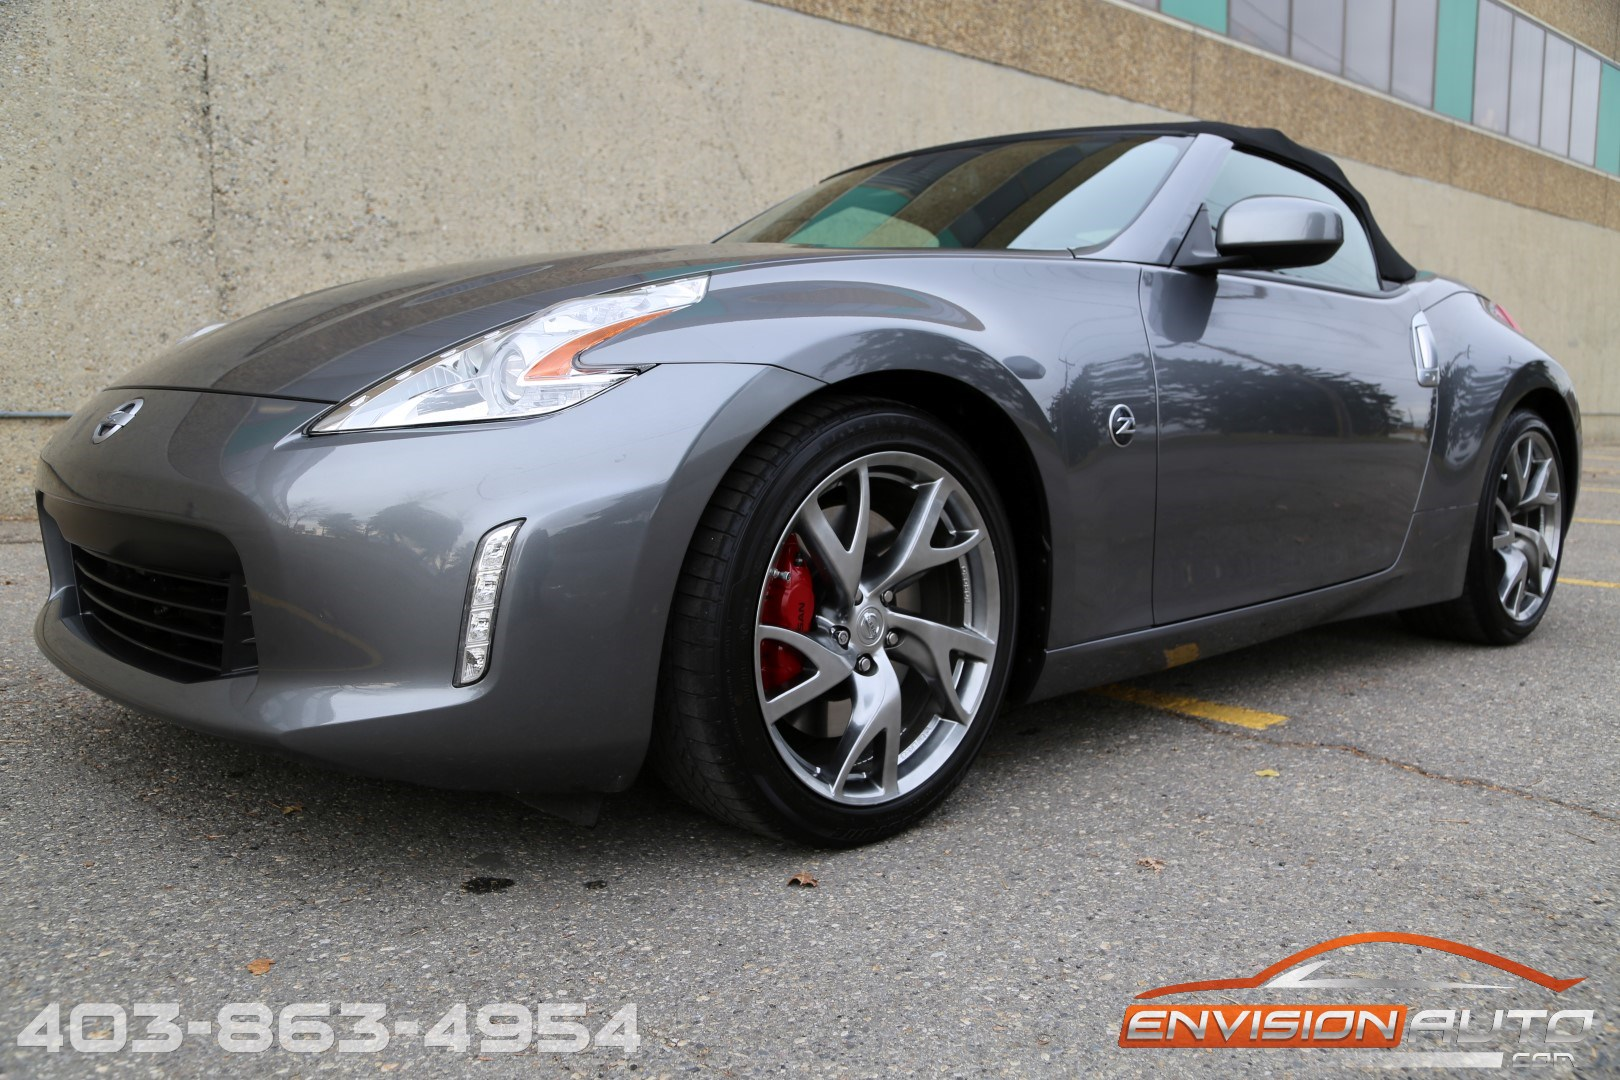 Image Result For Z Touring Roadster